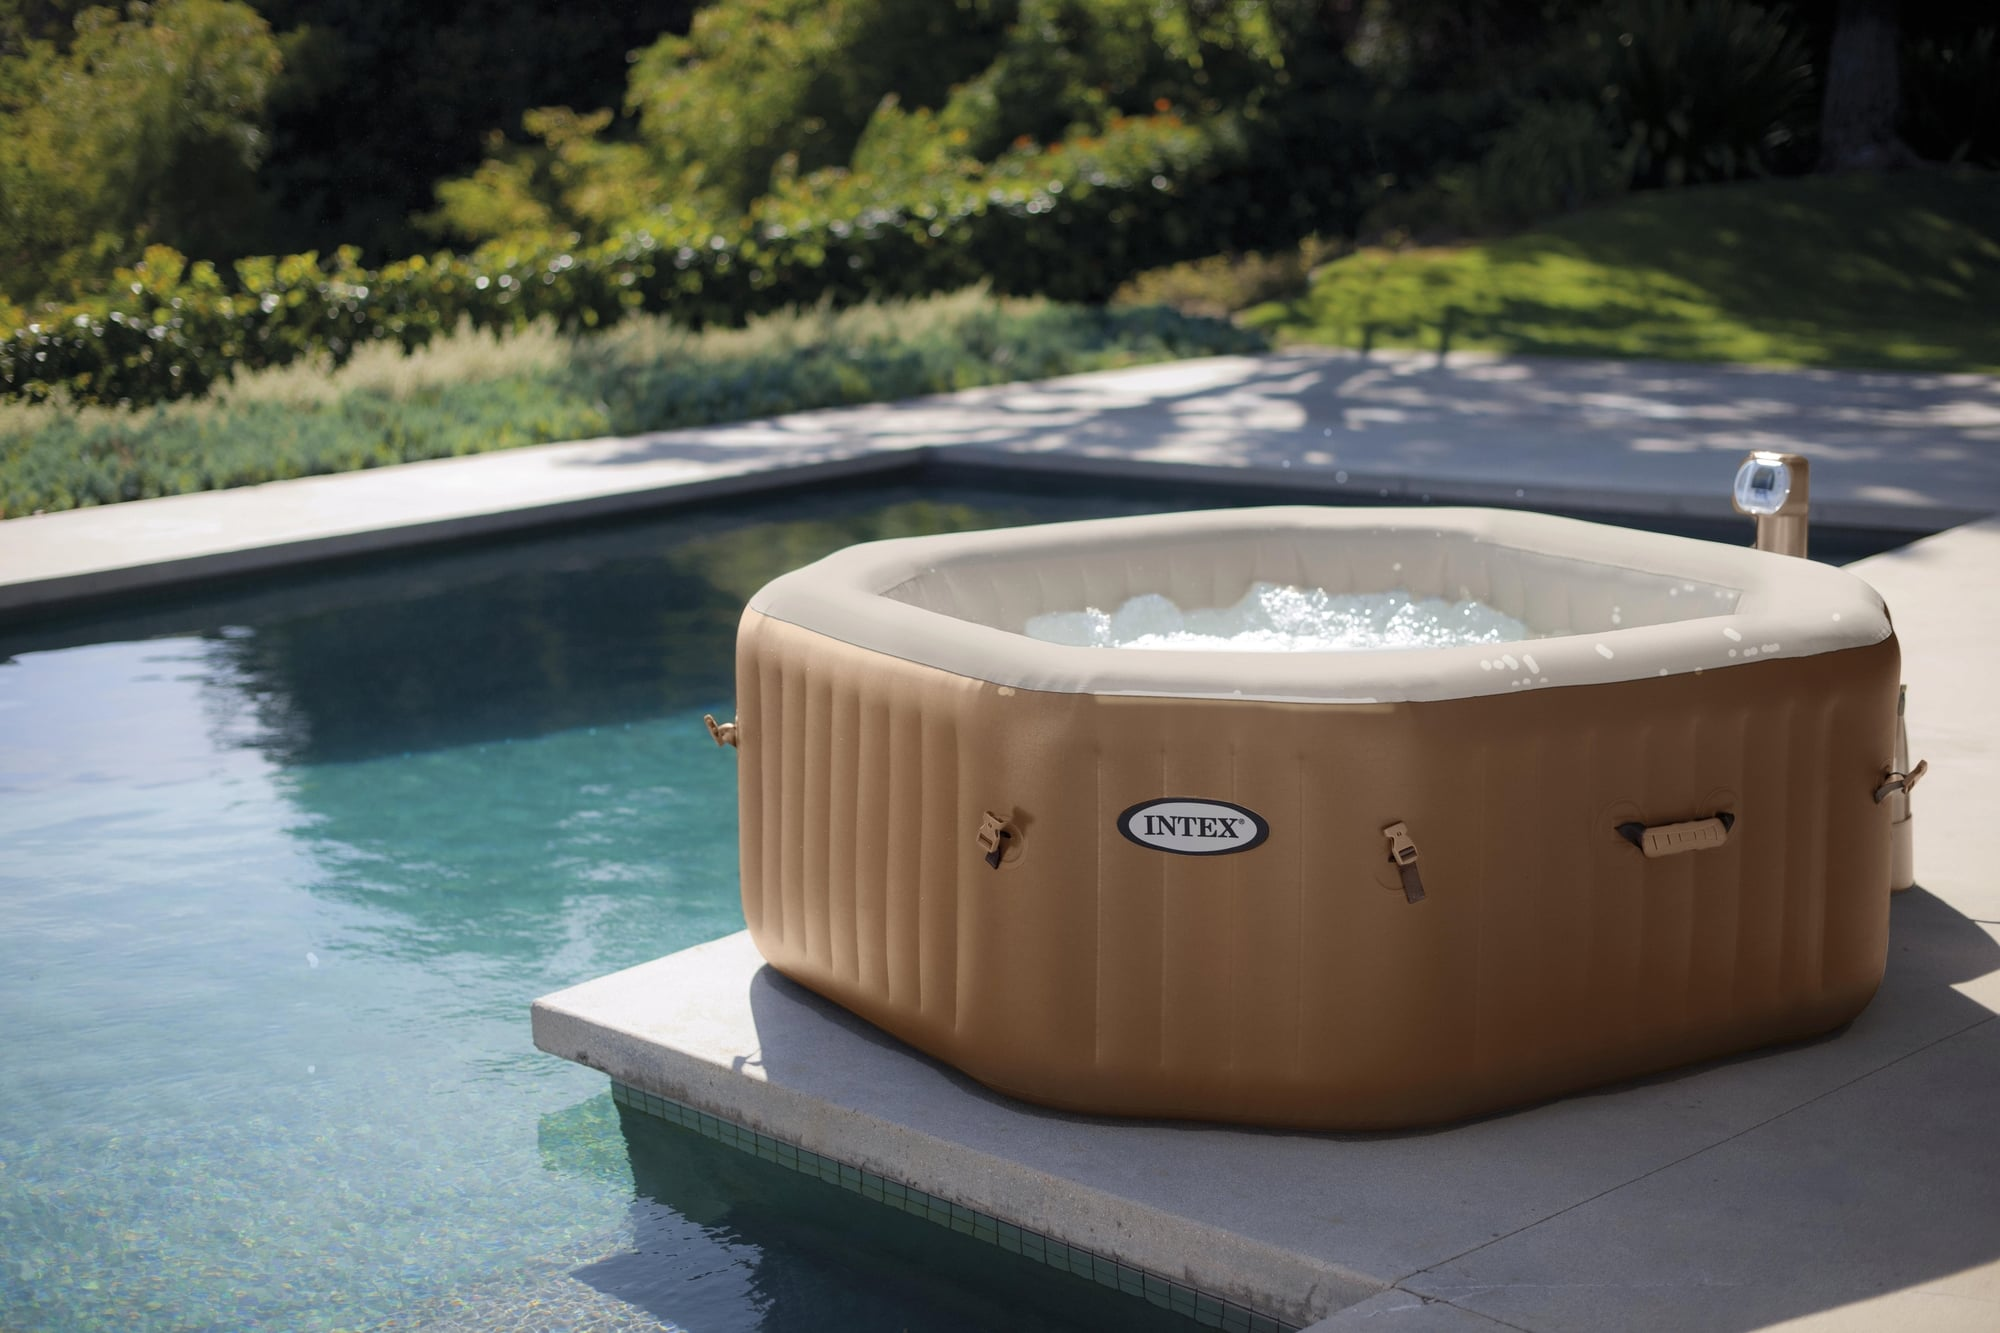 Poolpflege Aldi Whirlpool Pure Spa Bubble Octagonal Allespool Deutschland